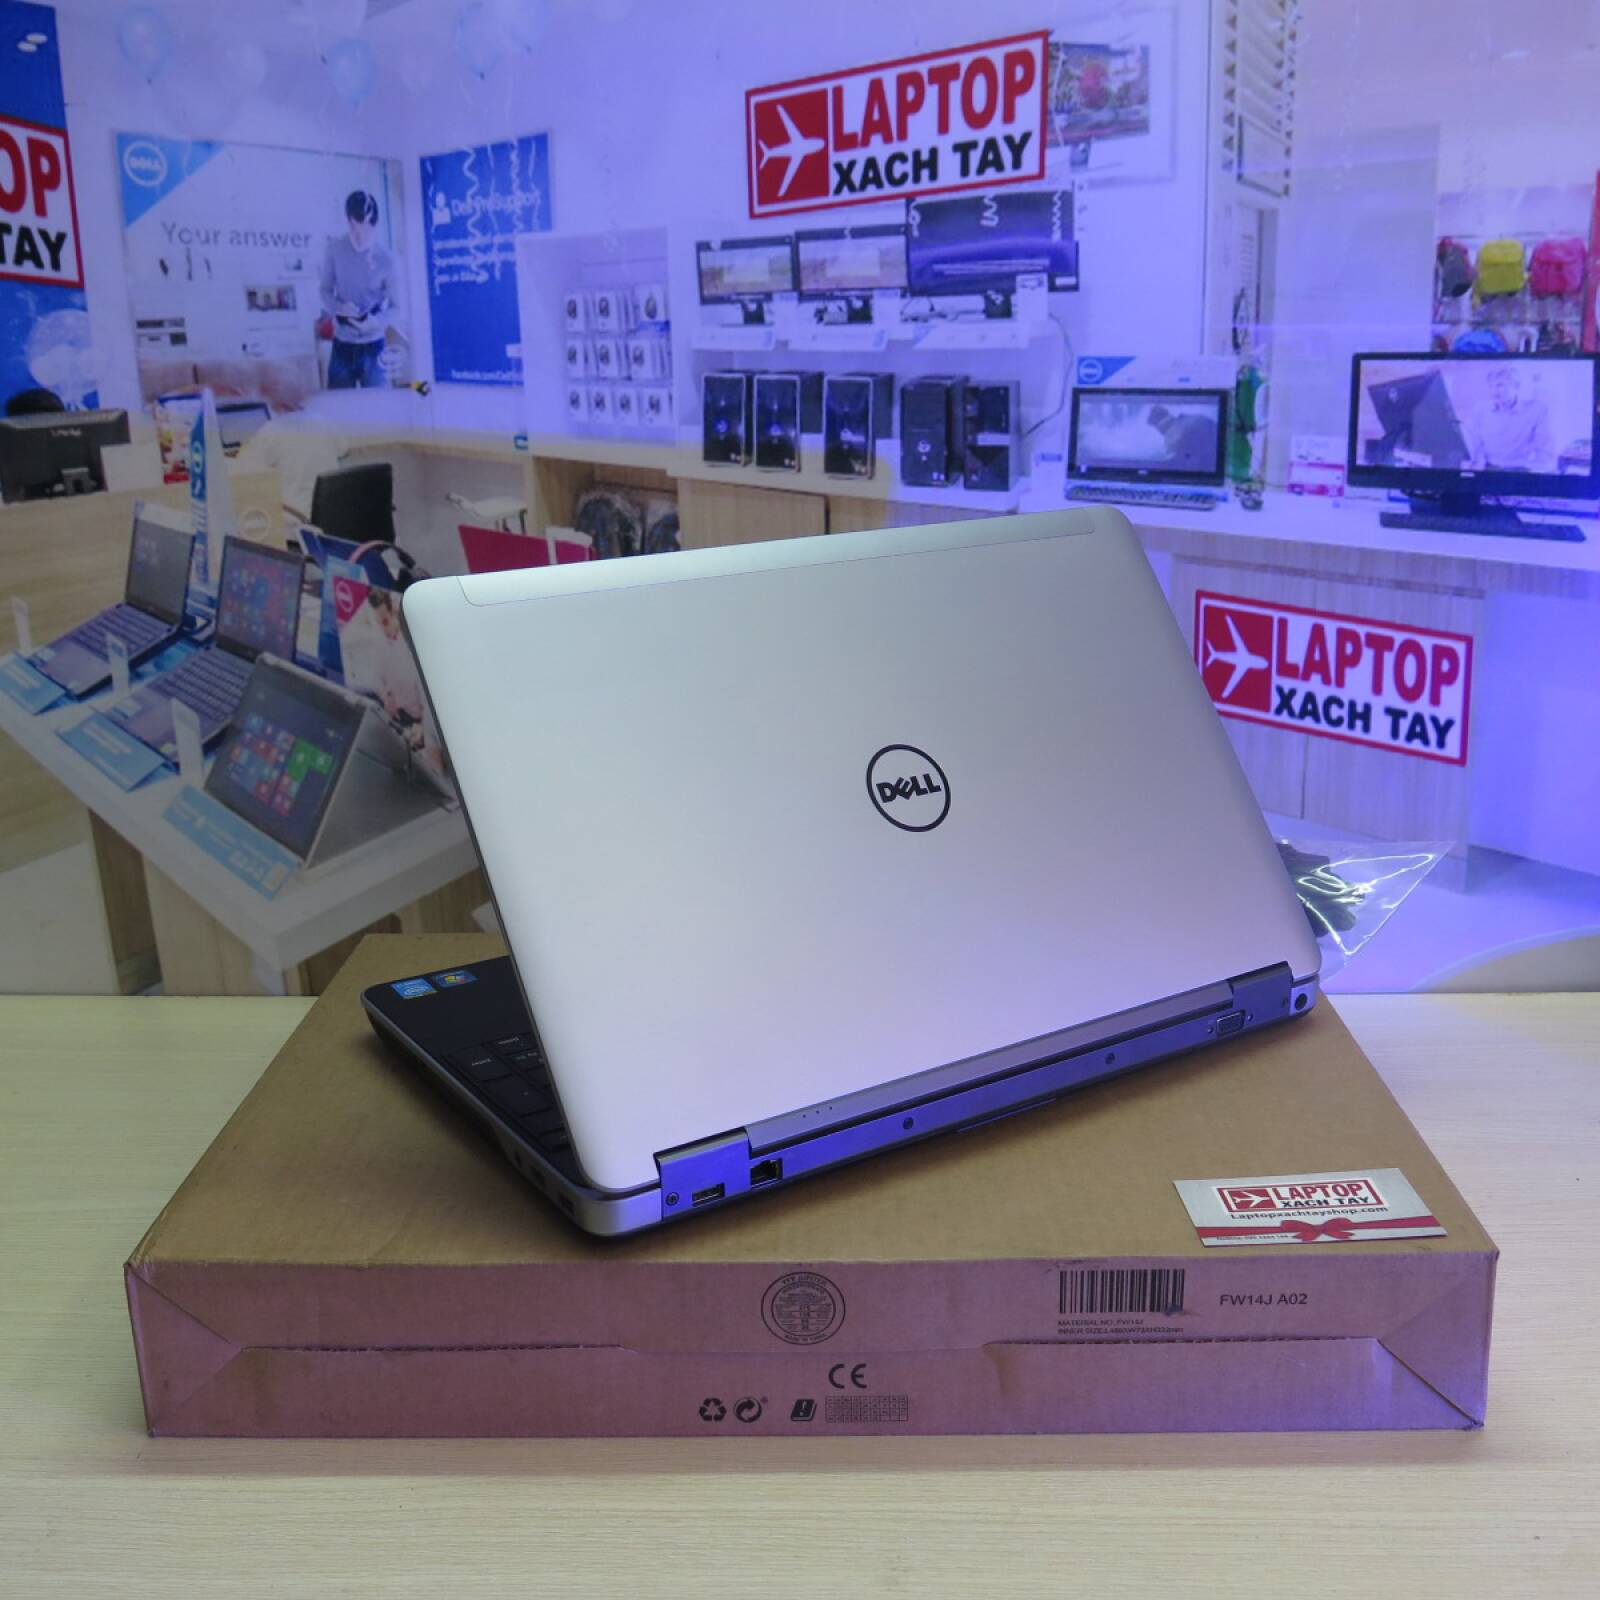 Laptop Dell Latitude E6540 tại Laptopxachtayshop.com